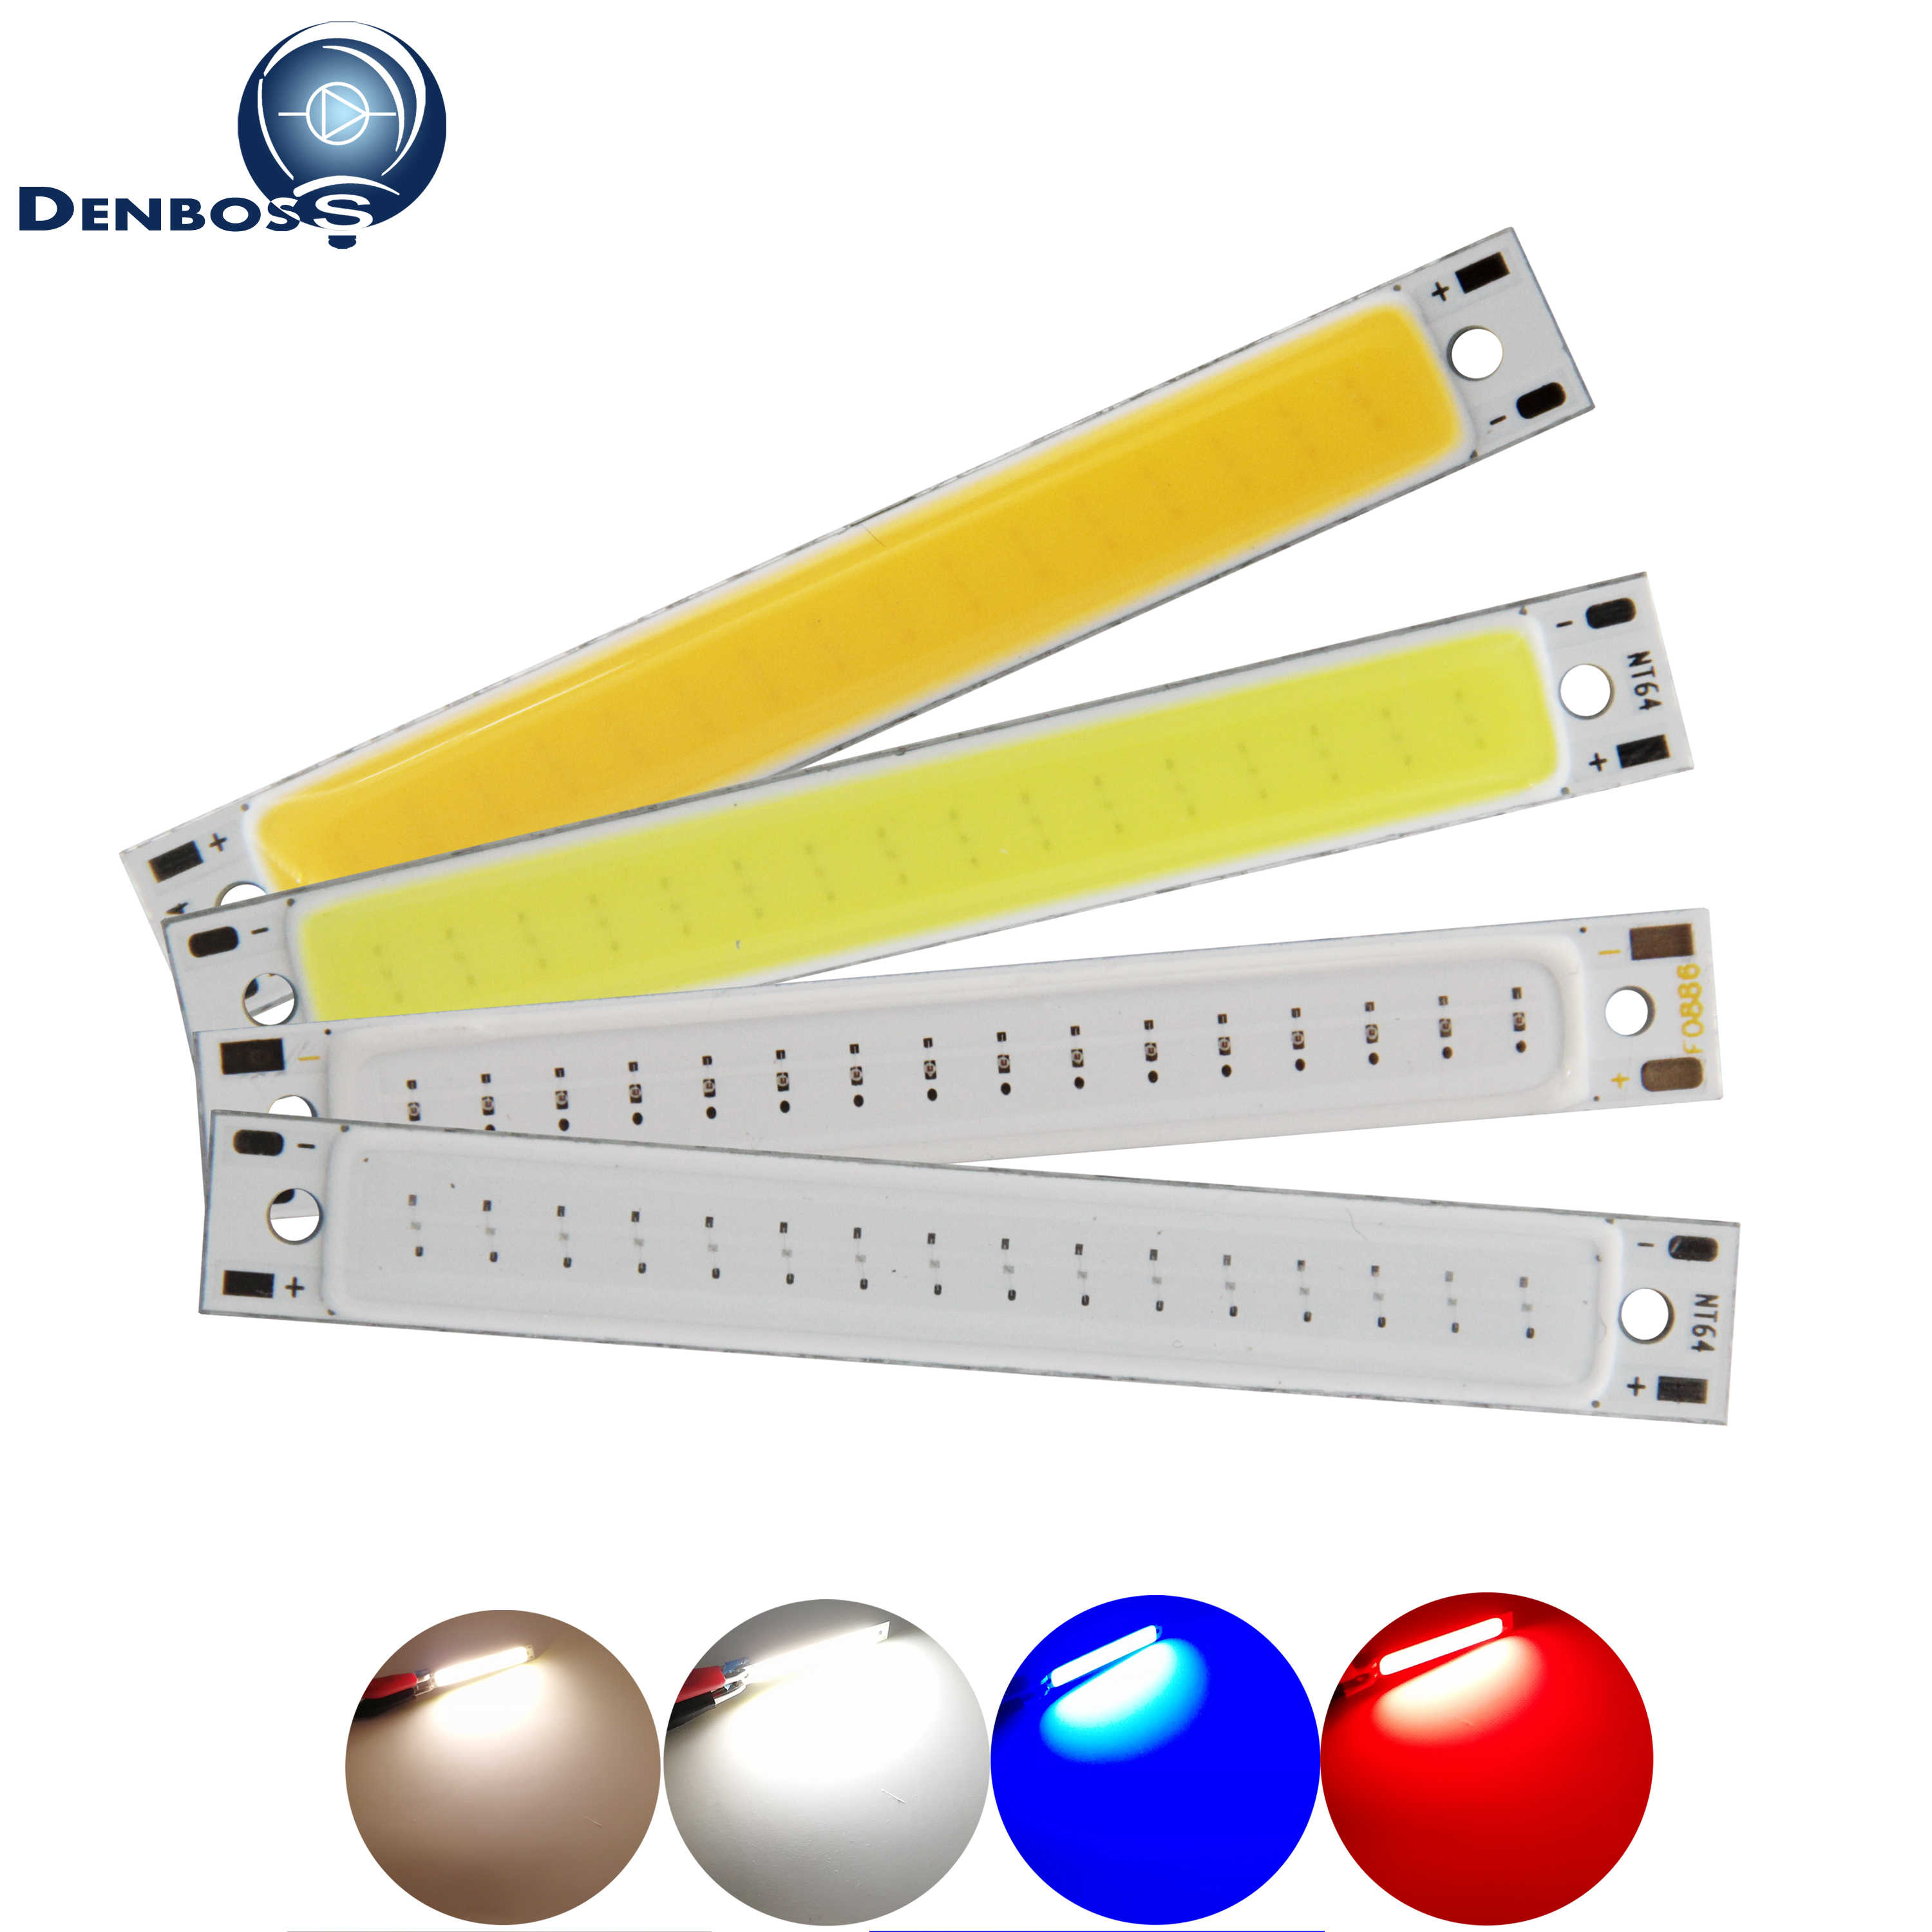 Hot sale DENBOSS manufacturer 60x8mm LED COB Strip for work lamp 1.5W 3W 2V 3V DC Warm White Blue Red COB LED Light for DIY